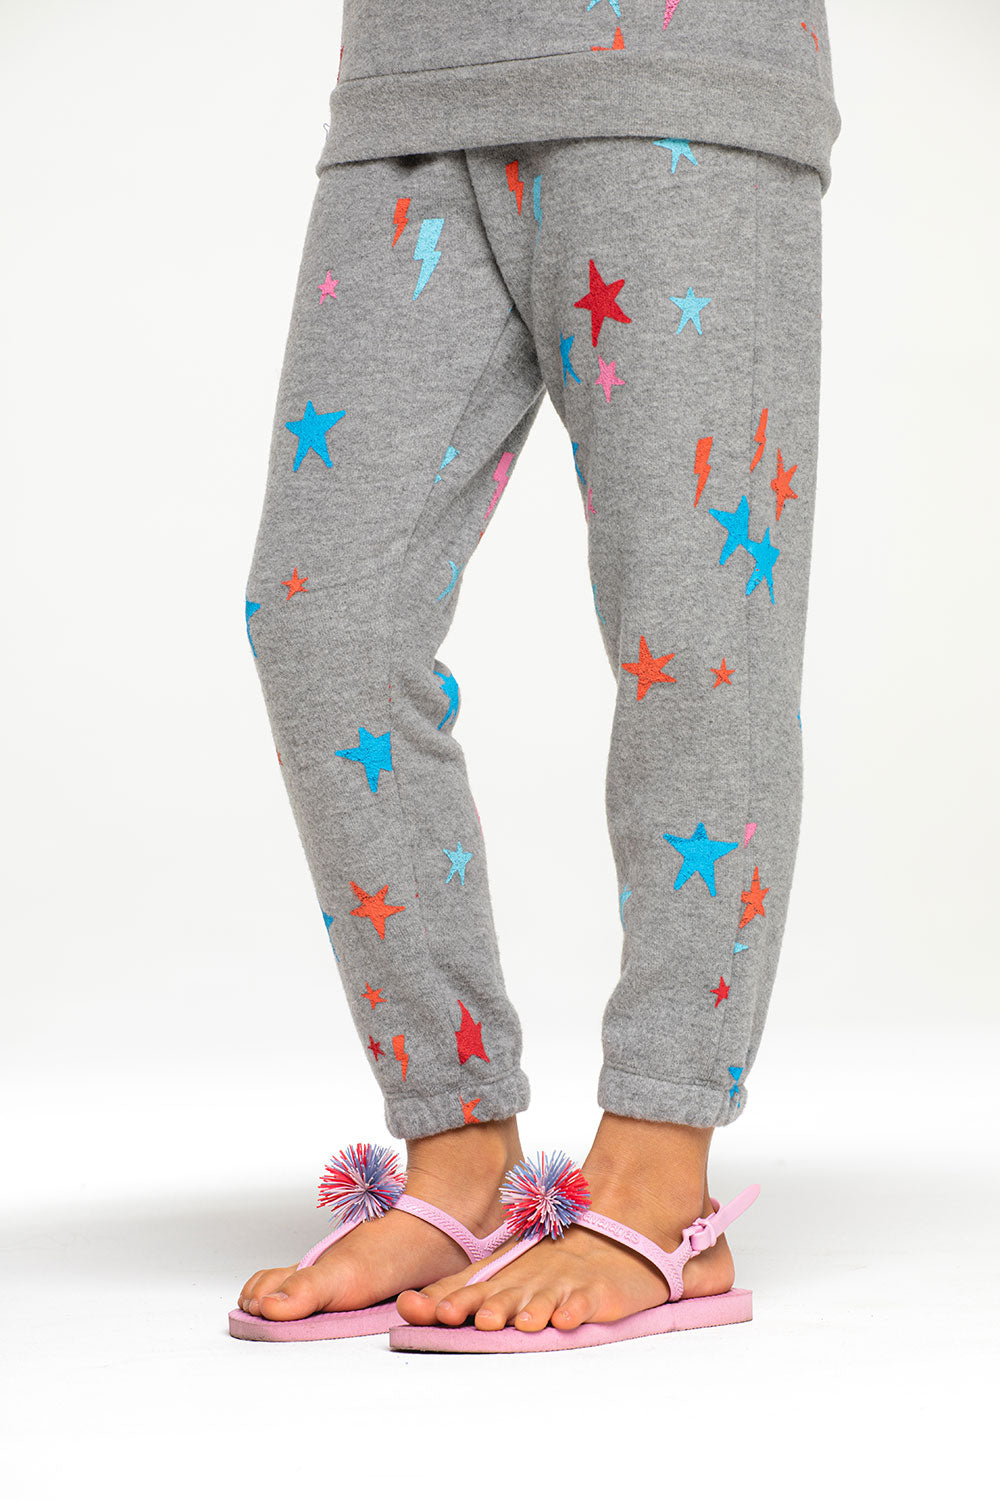 Starry Bolts Pant GIRLS - chaserbrand